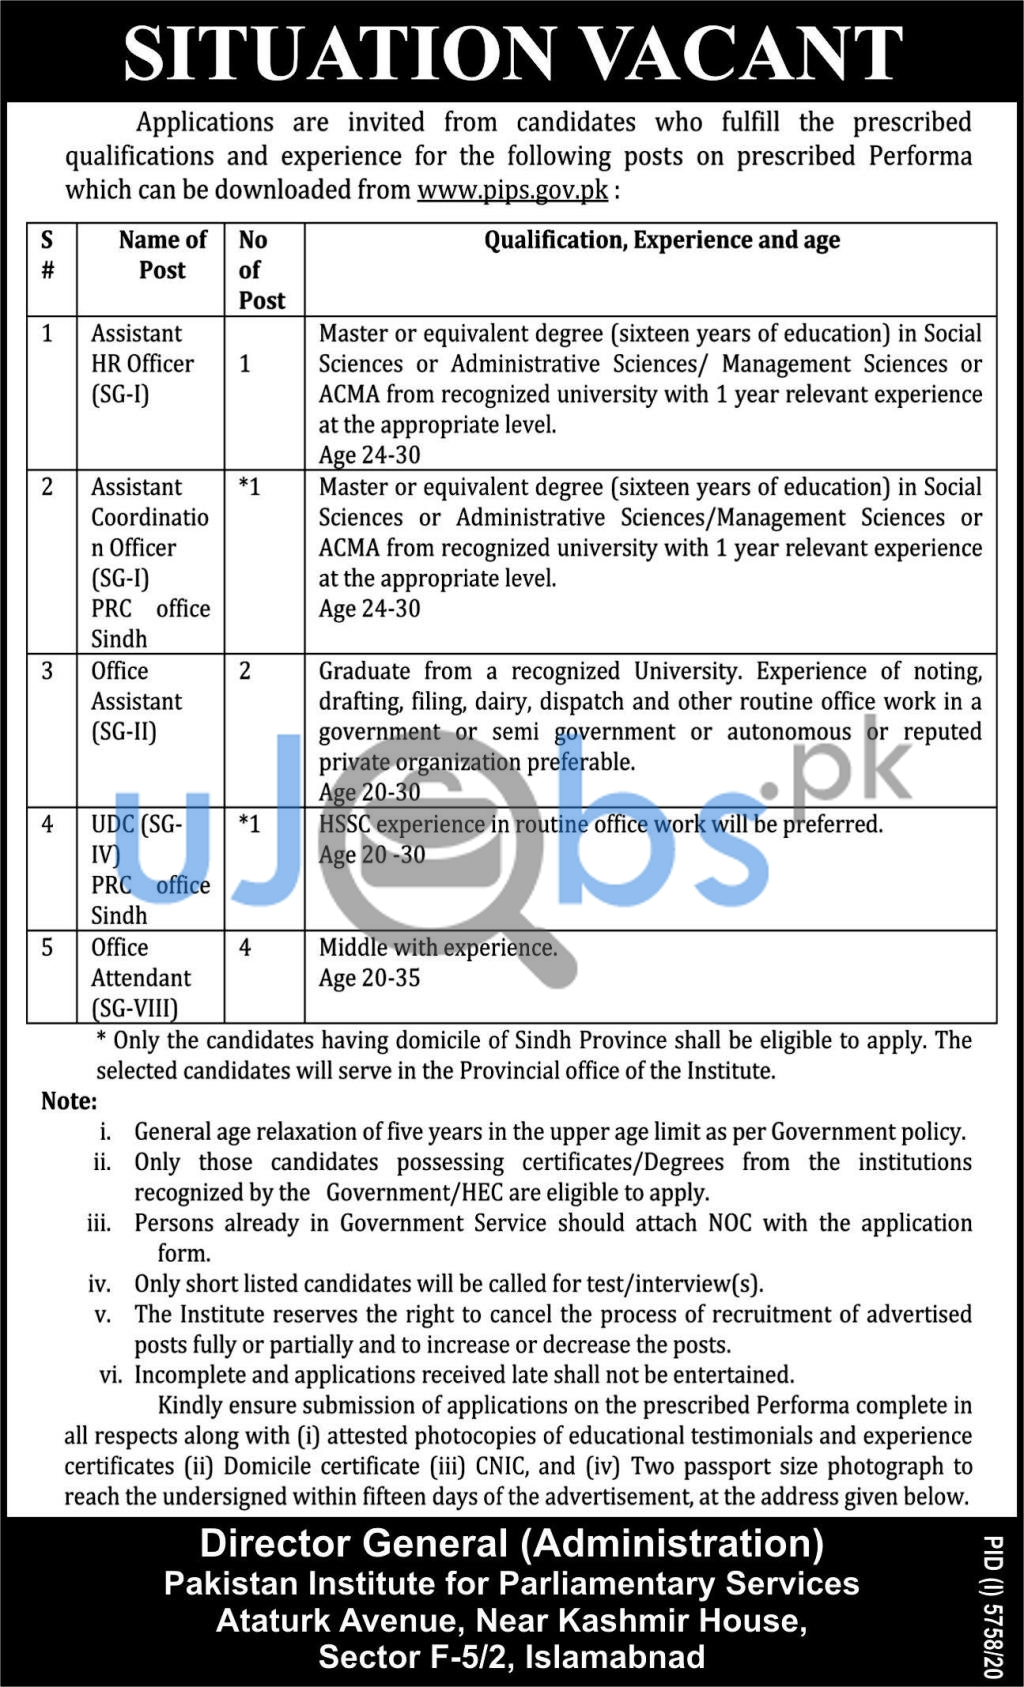 Pakistan Institute for Parliamentary Services PIPS Jobs in Islamabad April 2021